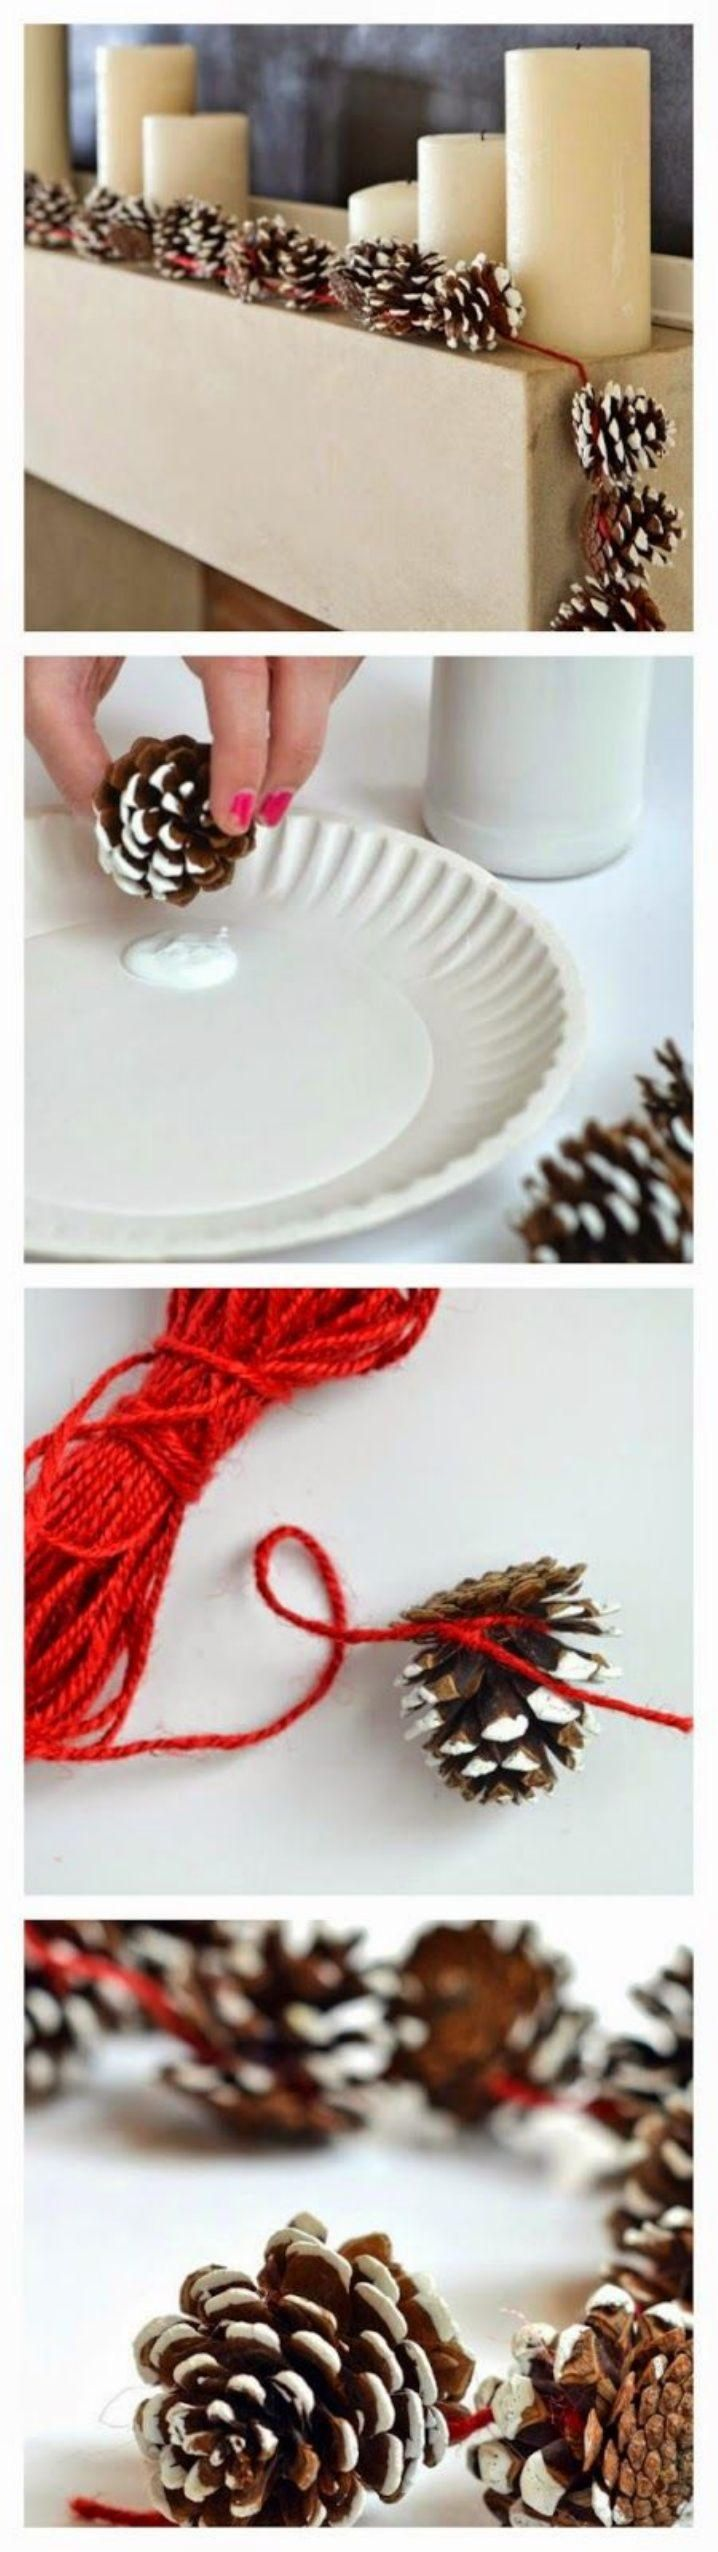 Pinecone Garland - wrap it around our poinsettia Yule lights.  Maybe add green burlap scraps as well?